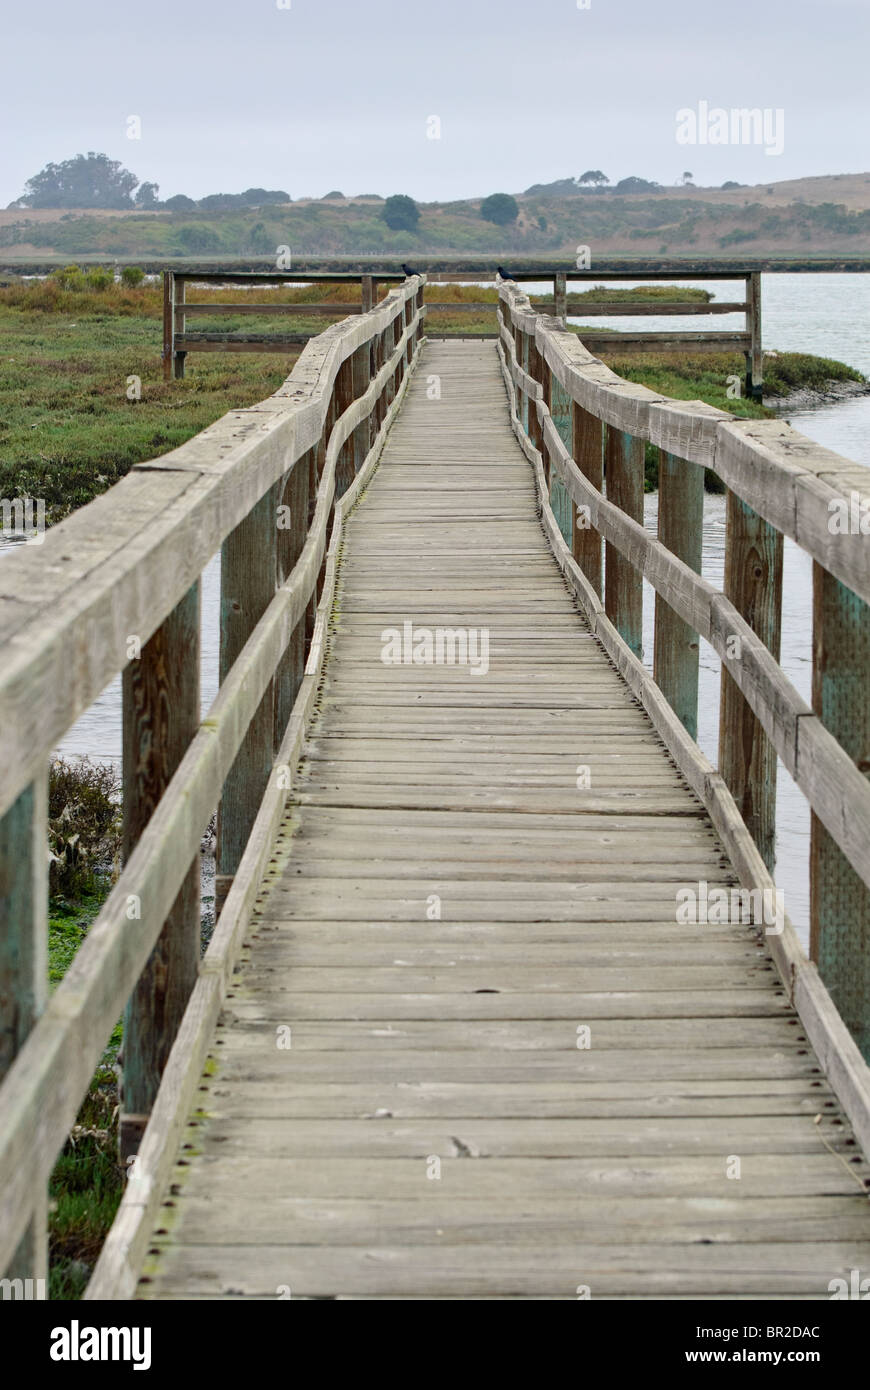 Wooden pier in the Elkhorn Slough, a tidal estuary. Stock Photo